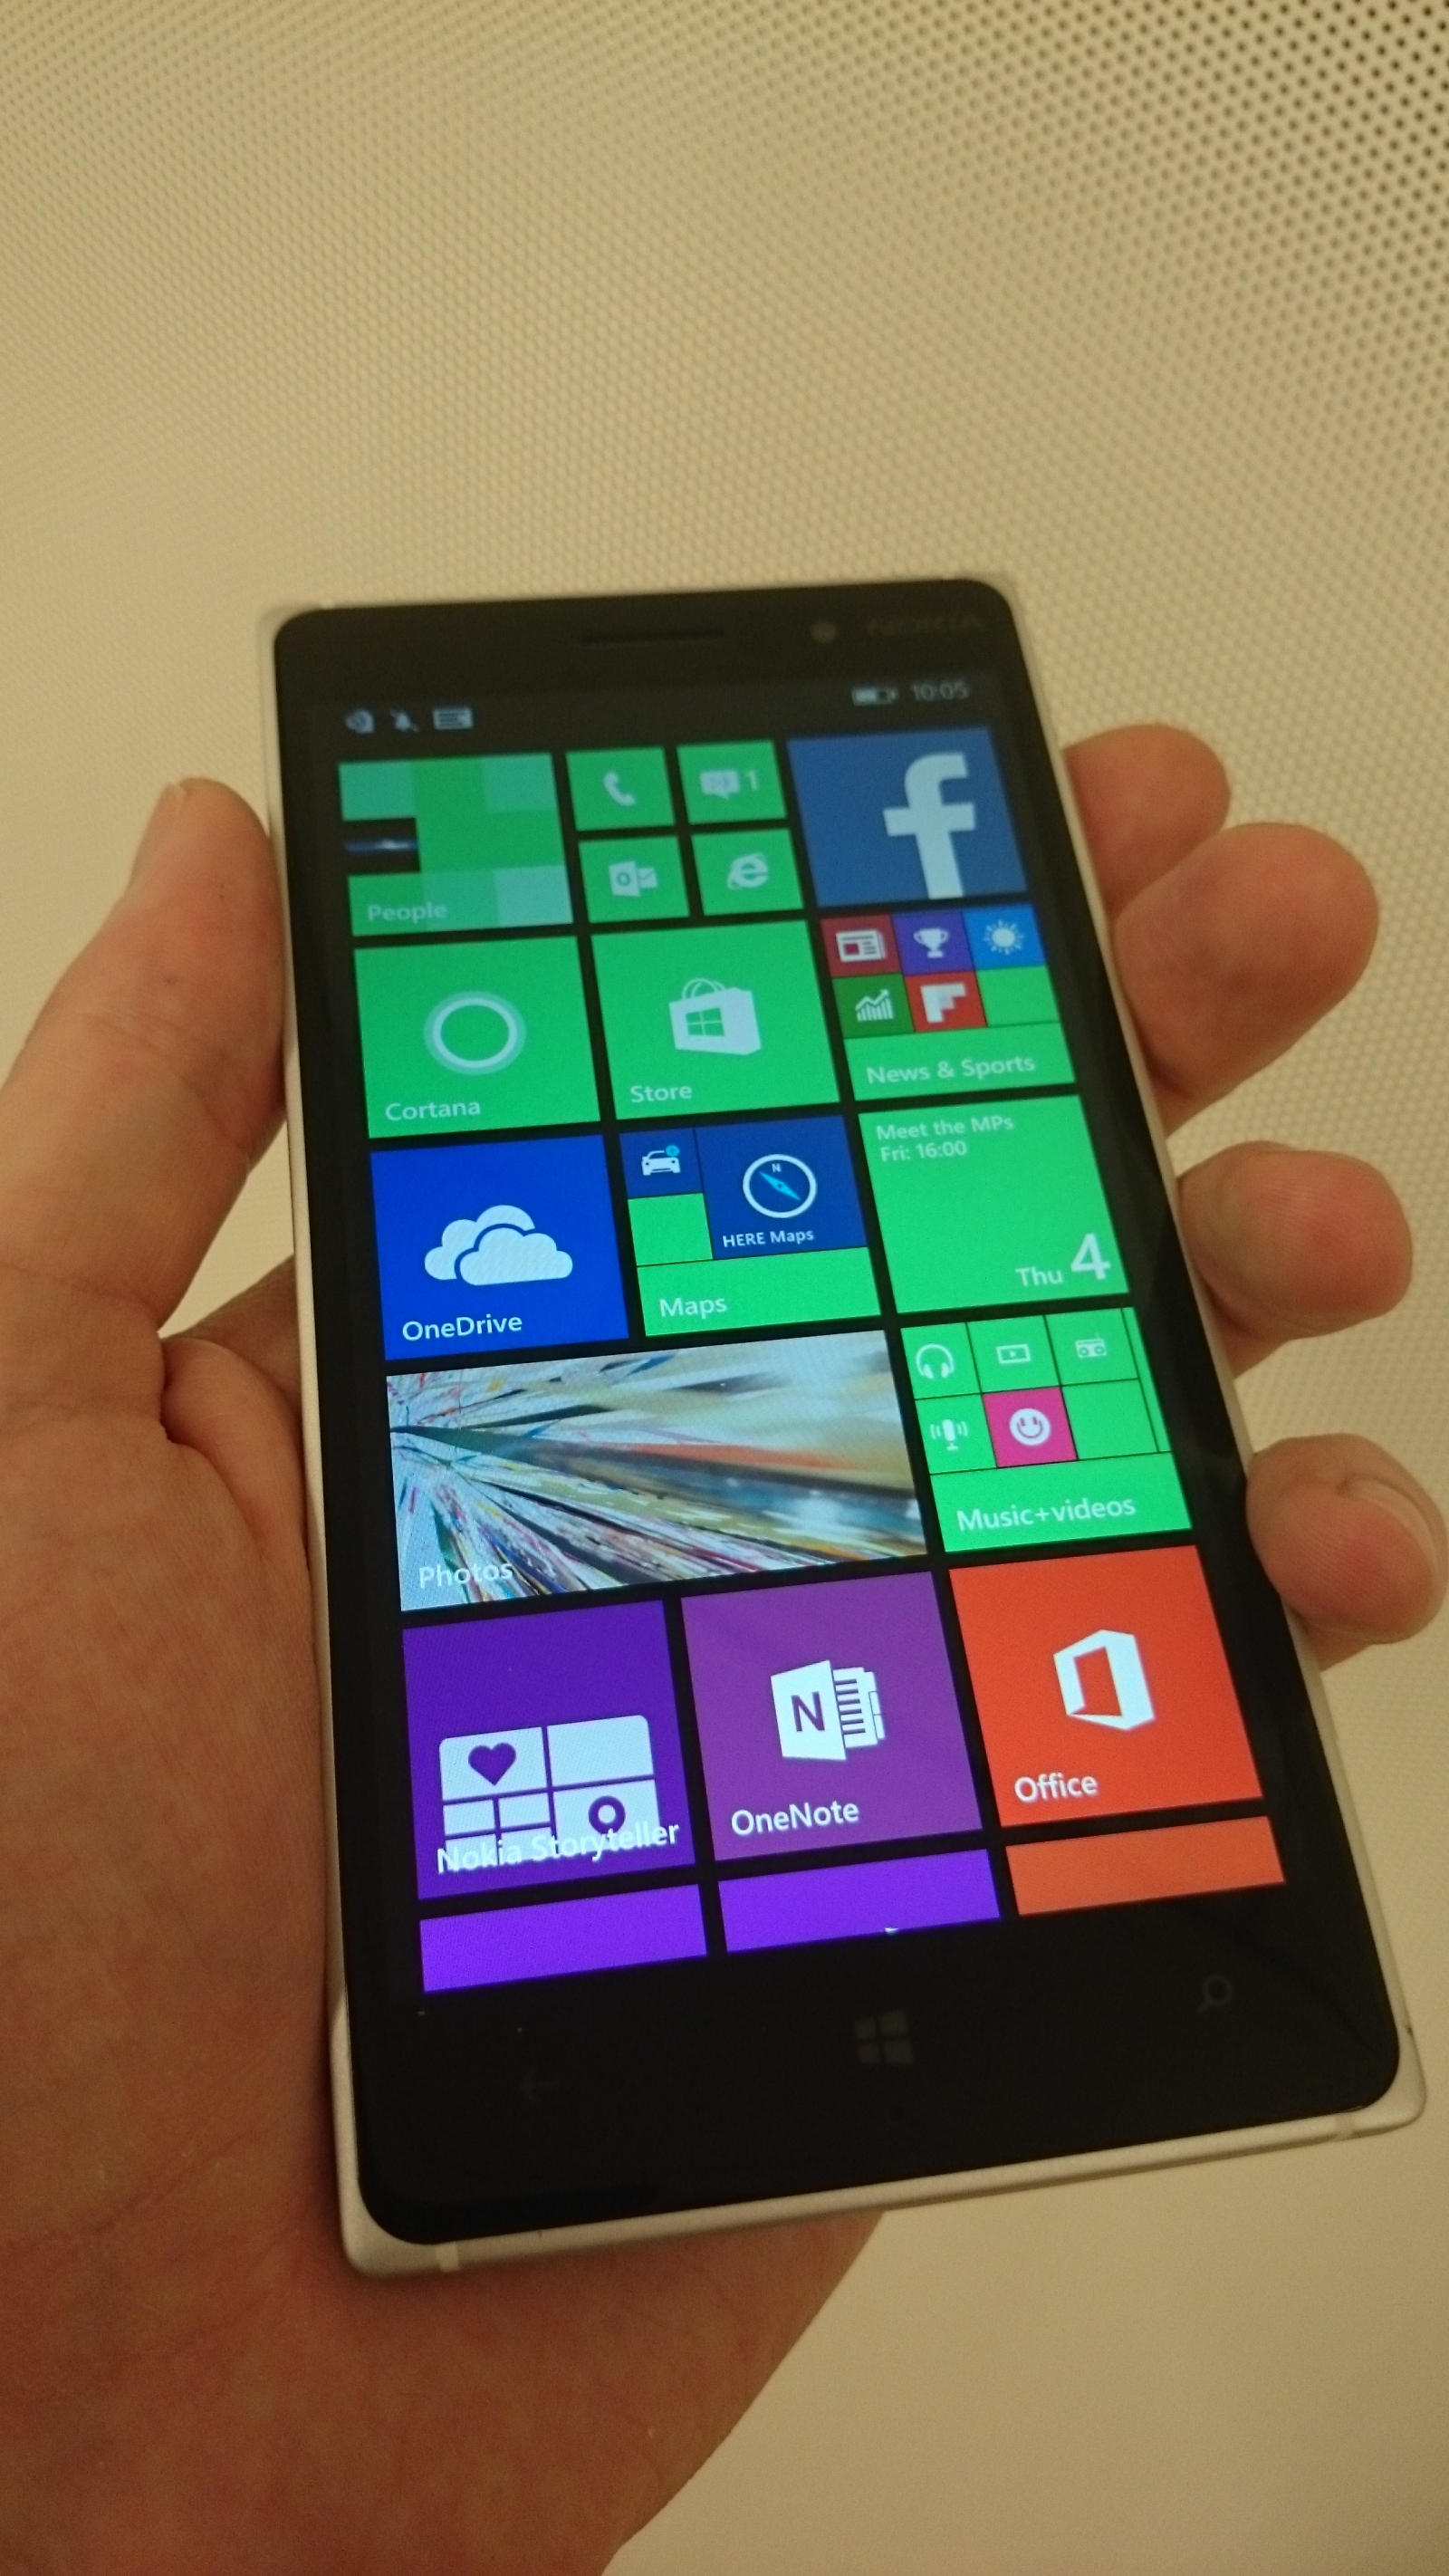 Nokia Lumia 830 hands on